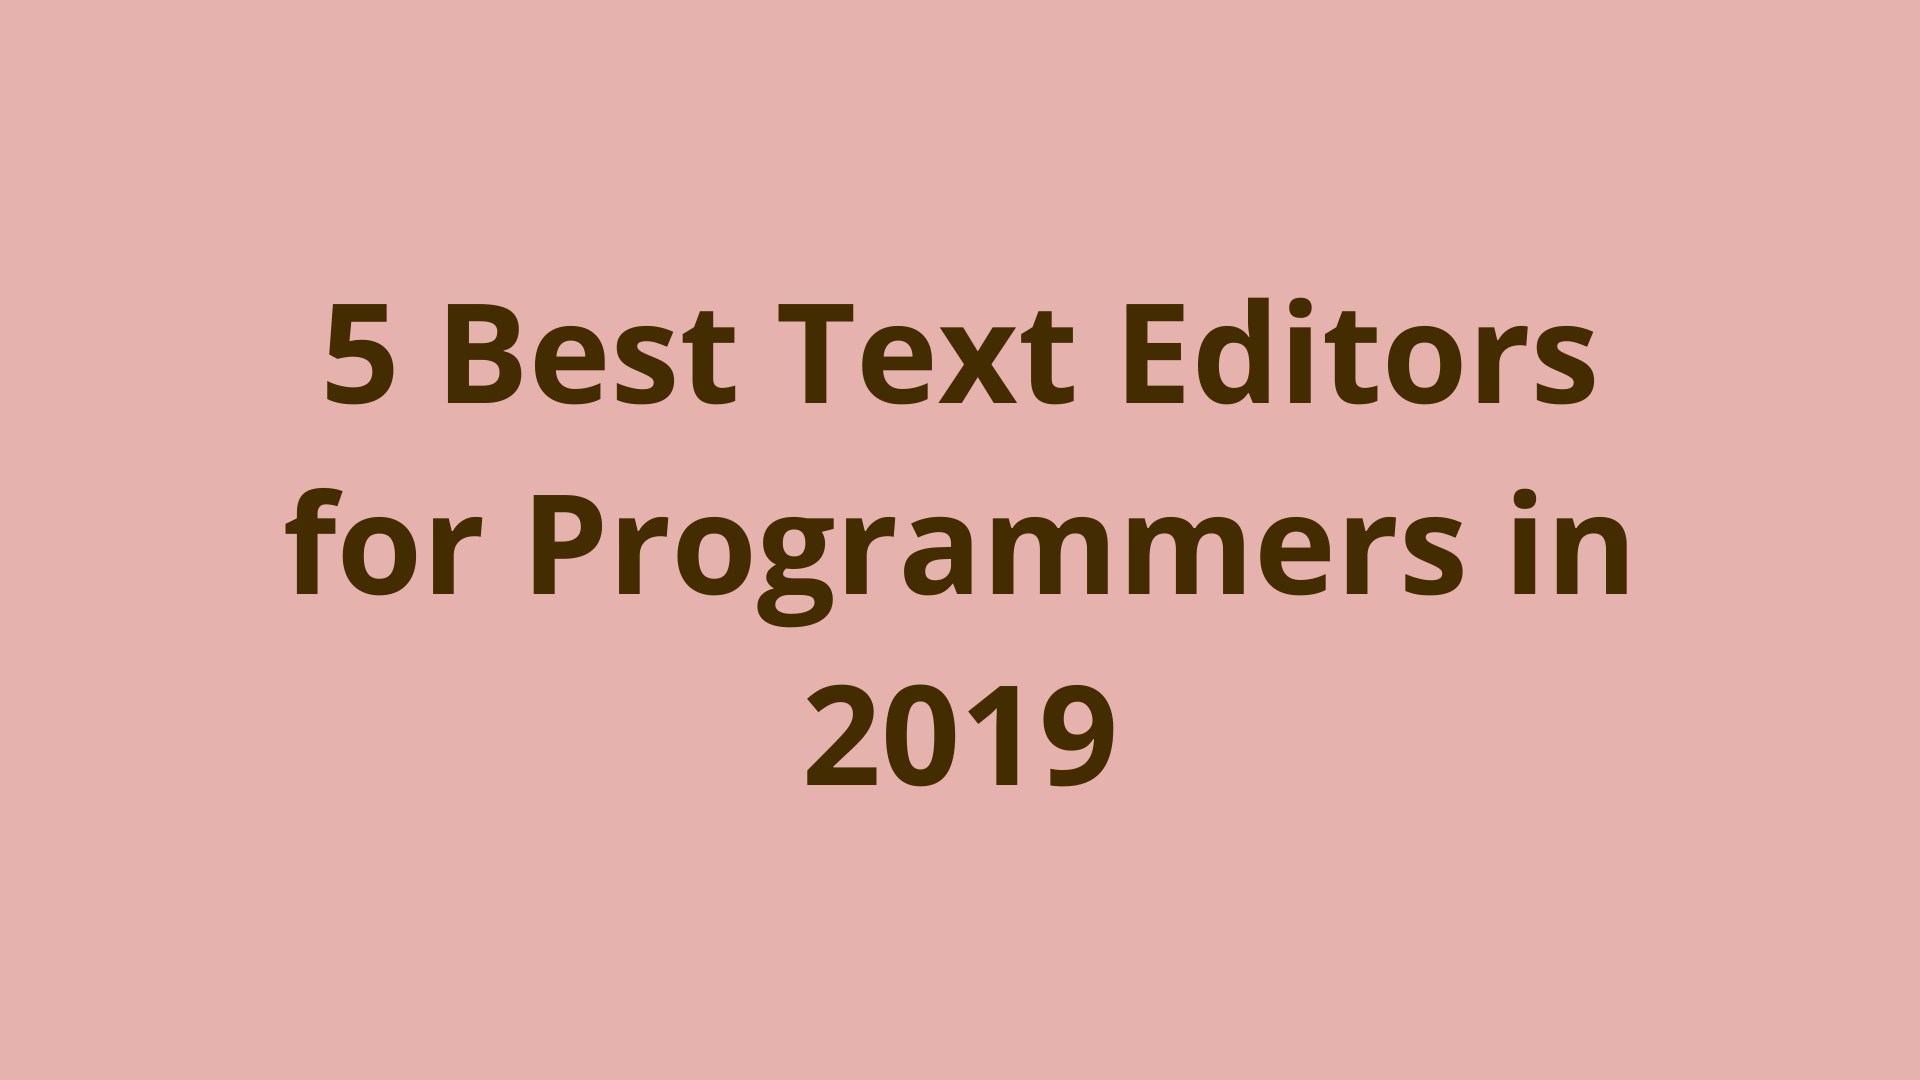 Image of 5 best text editors for programmers in 2019